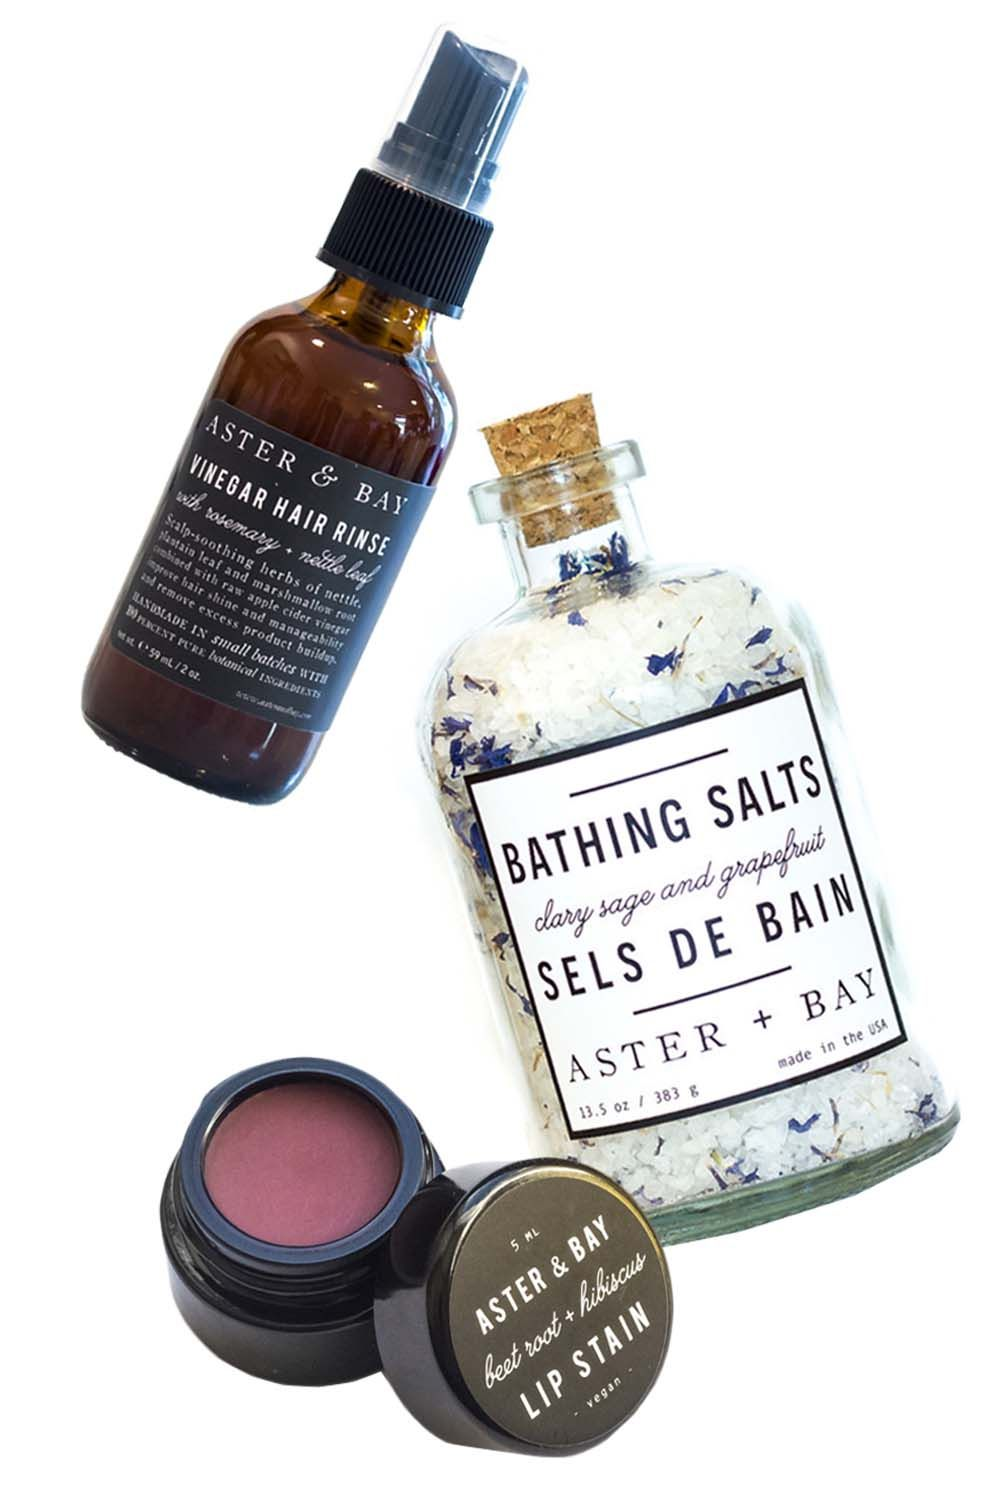 "<p>Inspired by Scottish craft preservation methods, herbal alchemy and plant folklore, this mom-and-pop brand out of Atlanta offers chemical- and- preservative-free products that come in beautiful recycled glass bottles. </p><p><strong>Aster + Bay</strong> Vinegar <a href=""http://asterandbay.com/products/vinegar-hair-rinse-rosemary-nettle"" target=""_blank"">Hair Rinse</a>, $18; Clary Sage + Grapefruit <a href=""http://asterandbay.com/products/bathing-salt-clary-sage-grapefruit"" target=""_blank"">Bathing Salts</a>, $32; and Beet Root + Hibiscus <a href=""http://asterandbay.com/products/lip-stain-beet-root-hibiscus"" target=""_blank"">Lip Stain</a>, $10, <a href=""http://asterandbay.com/"" target=""_blank"">asterandbay.com</a>.  </p>"